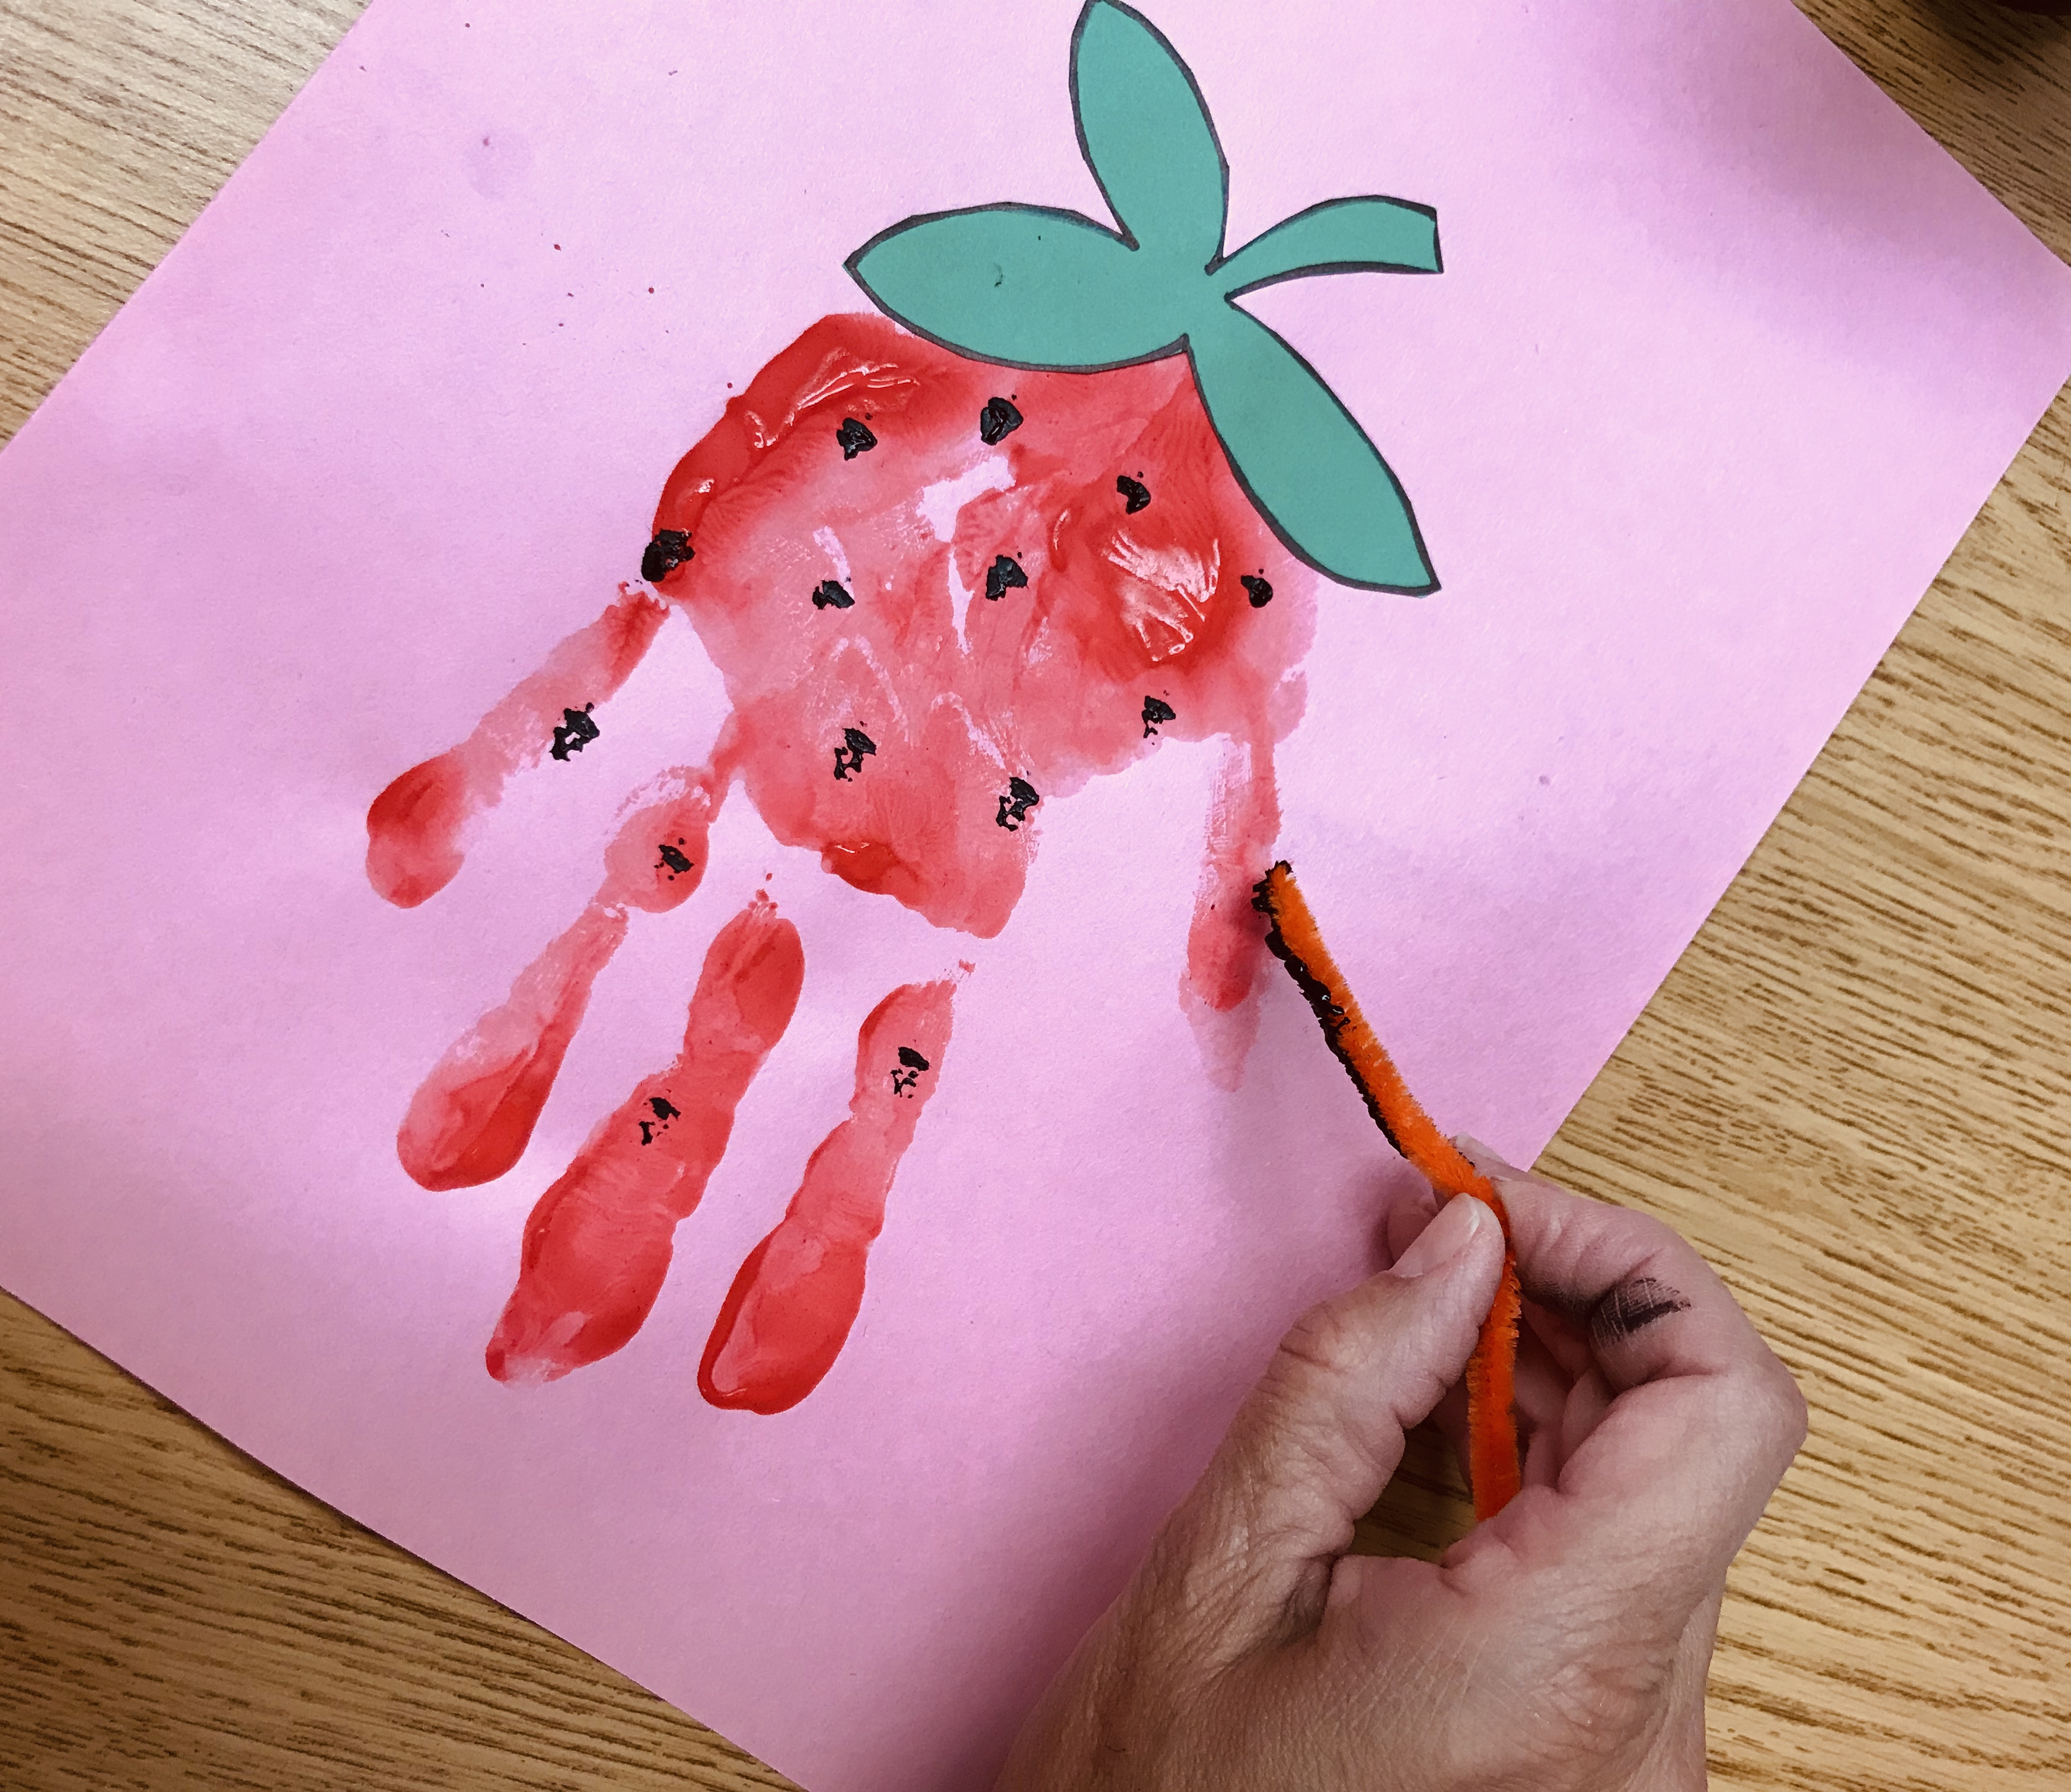 Using pipe cleaner stem to paint strawberry